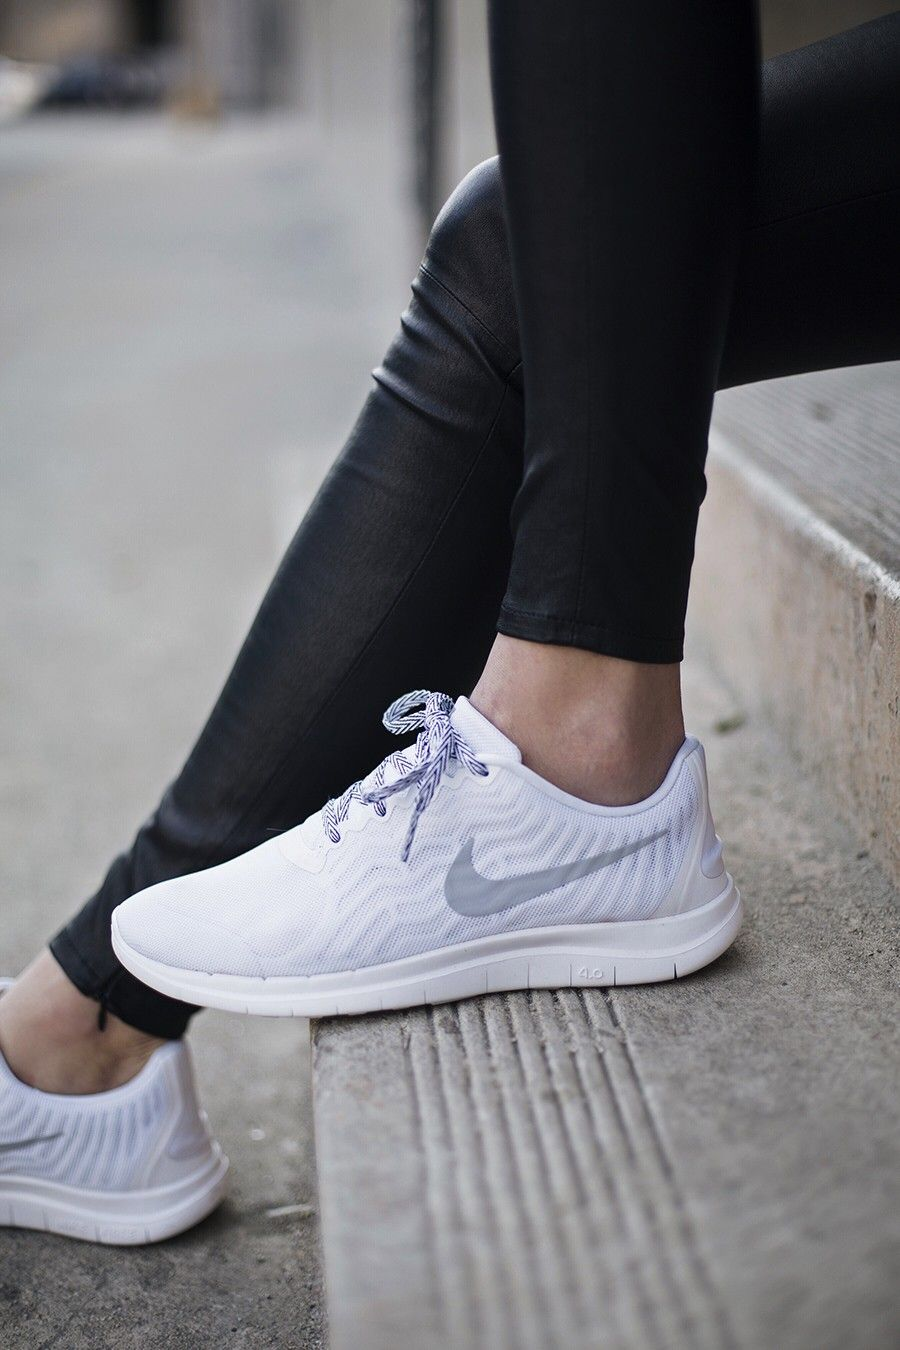 FriYAY Faves: Nike iD Free 4.0 Womens Running | Thrifts and Threads